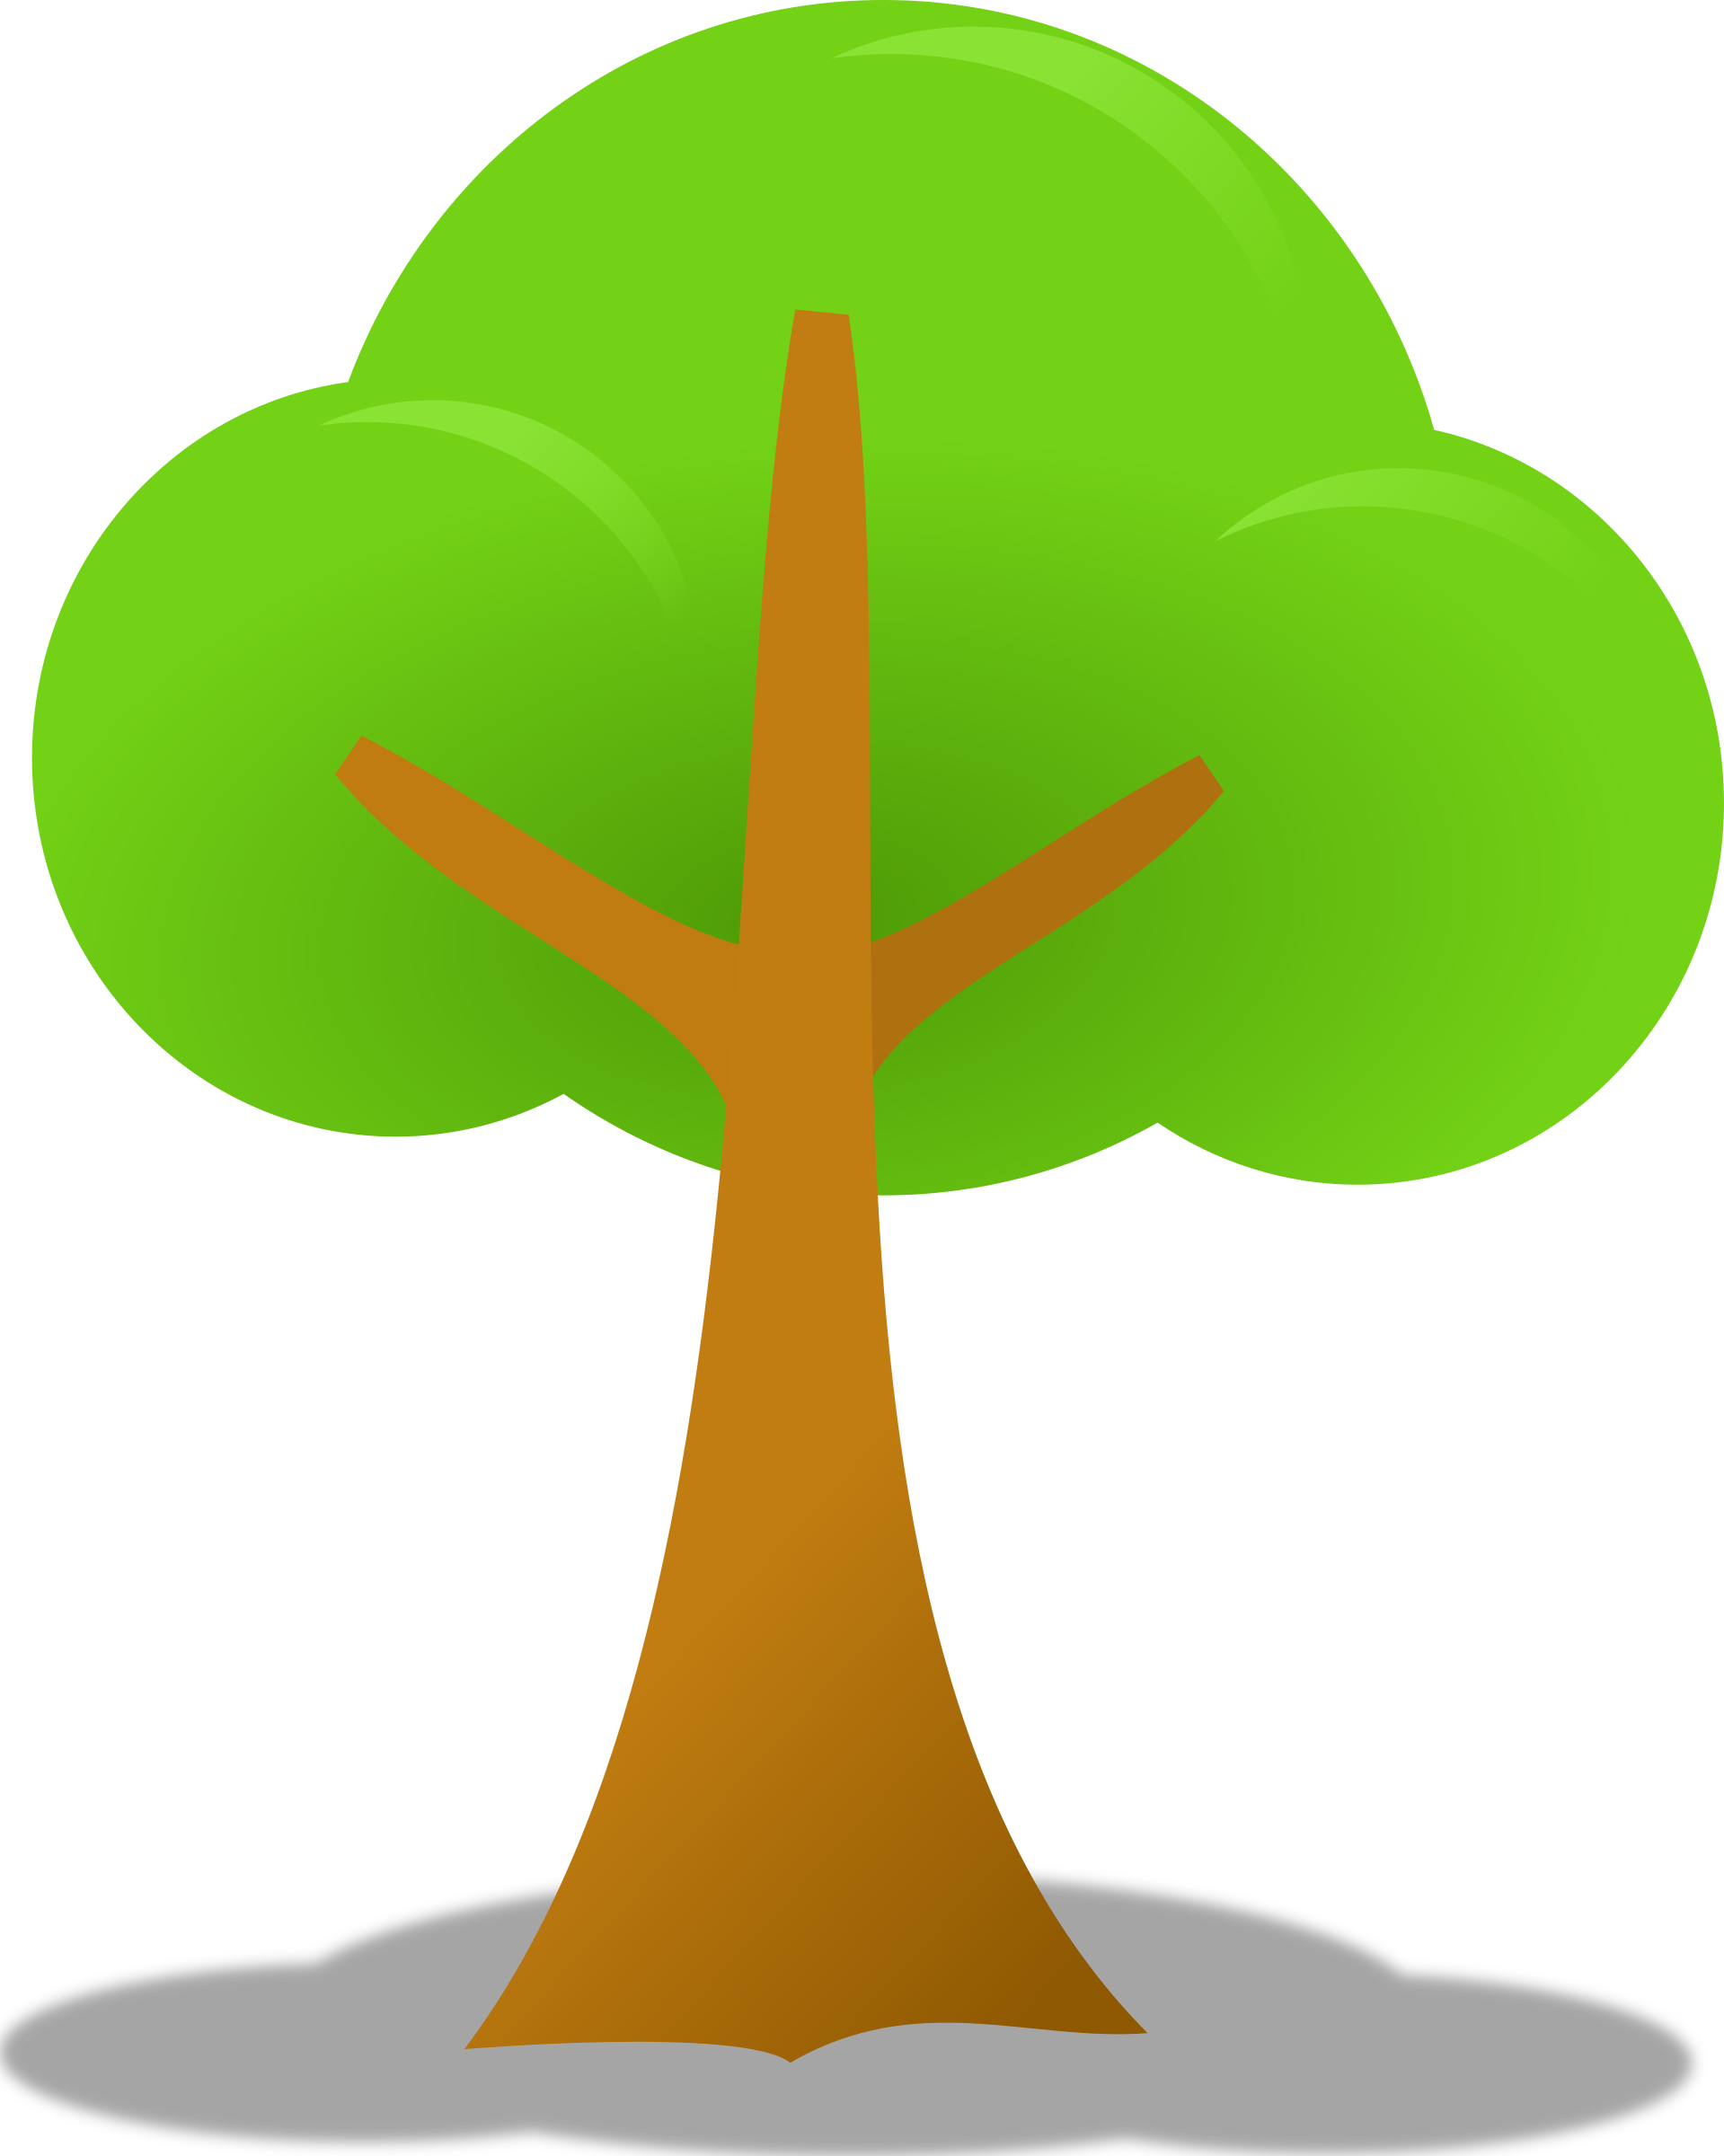 Tree big image png. Clipart forest simple